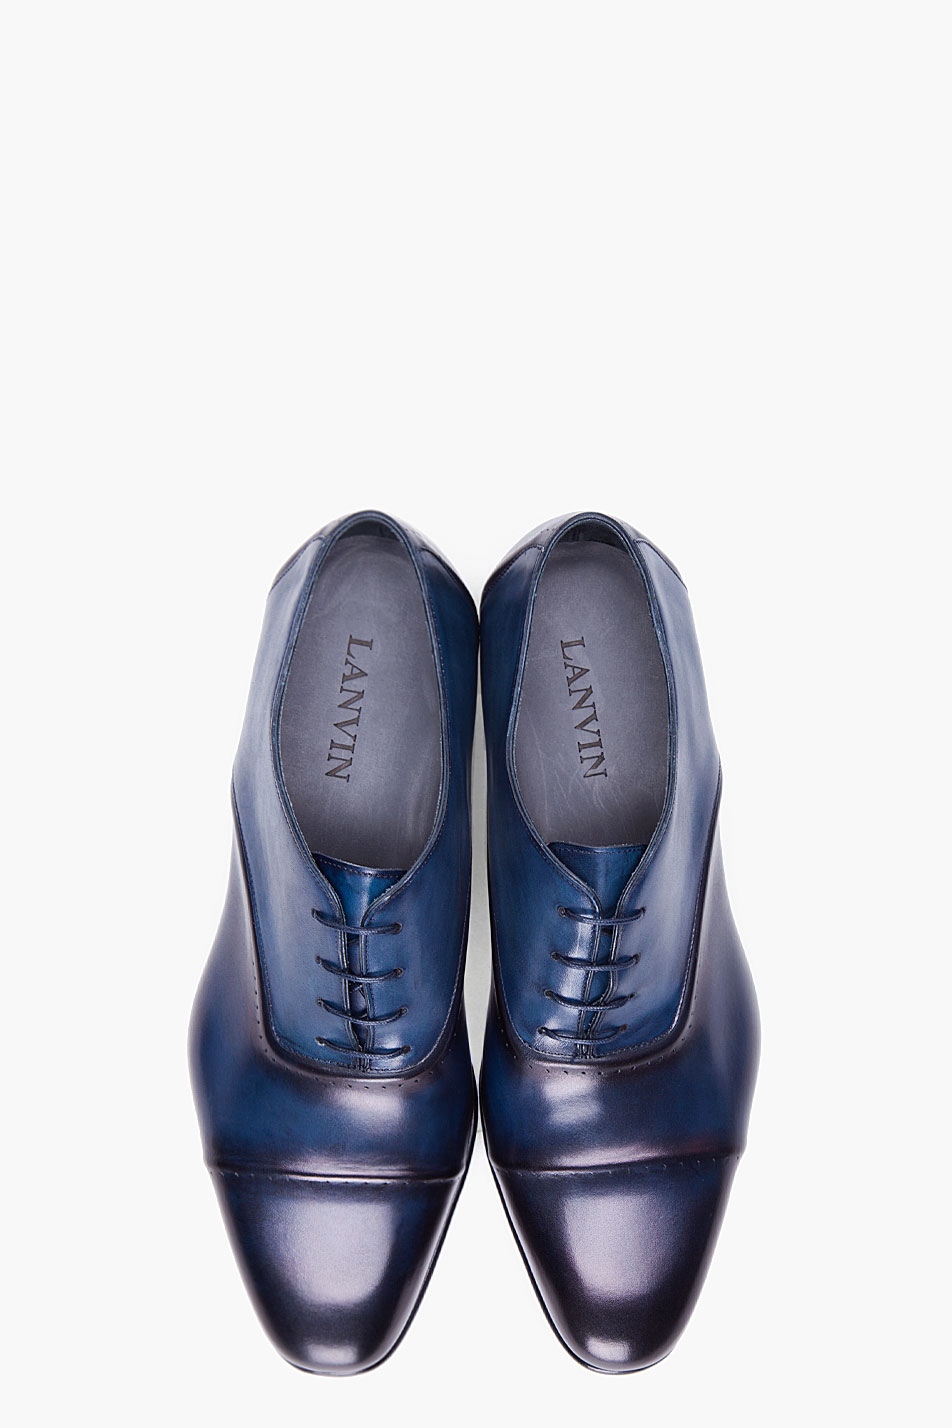 Lyst - Lanvin Navy Toesade Dress Shoes in Blue for Men